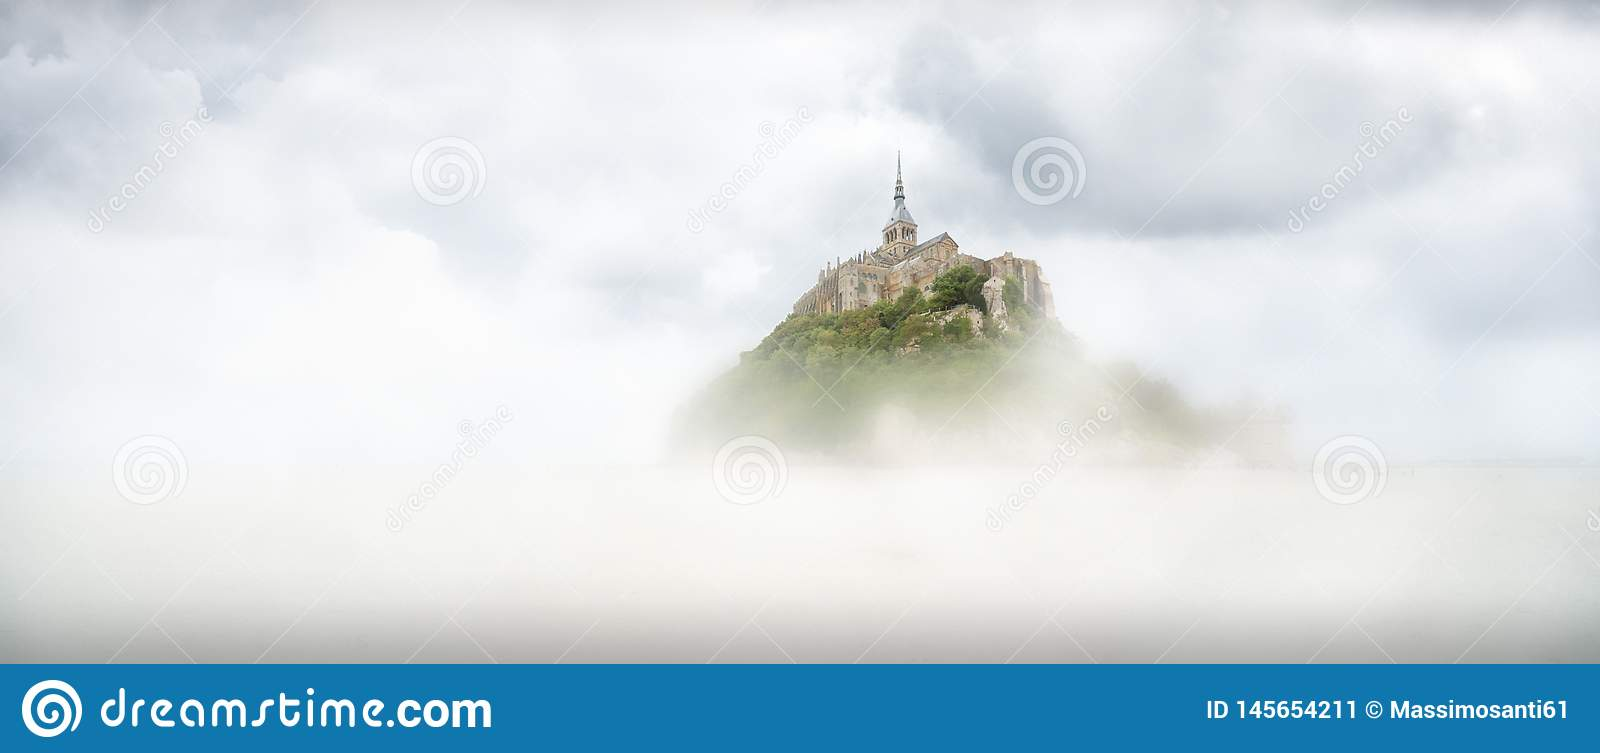 Panoramic view of the famous tidal island of Le Mont Saint-Michel on a fog day, Normandy, northern France